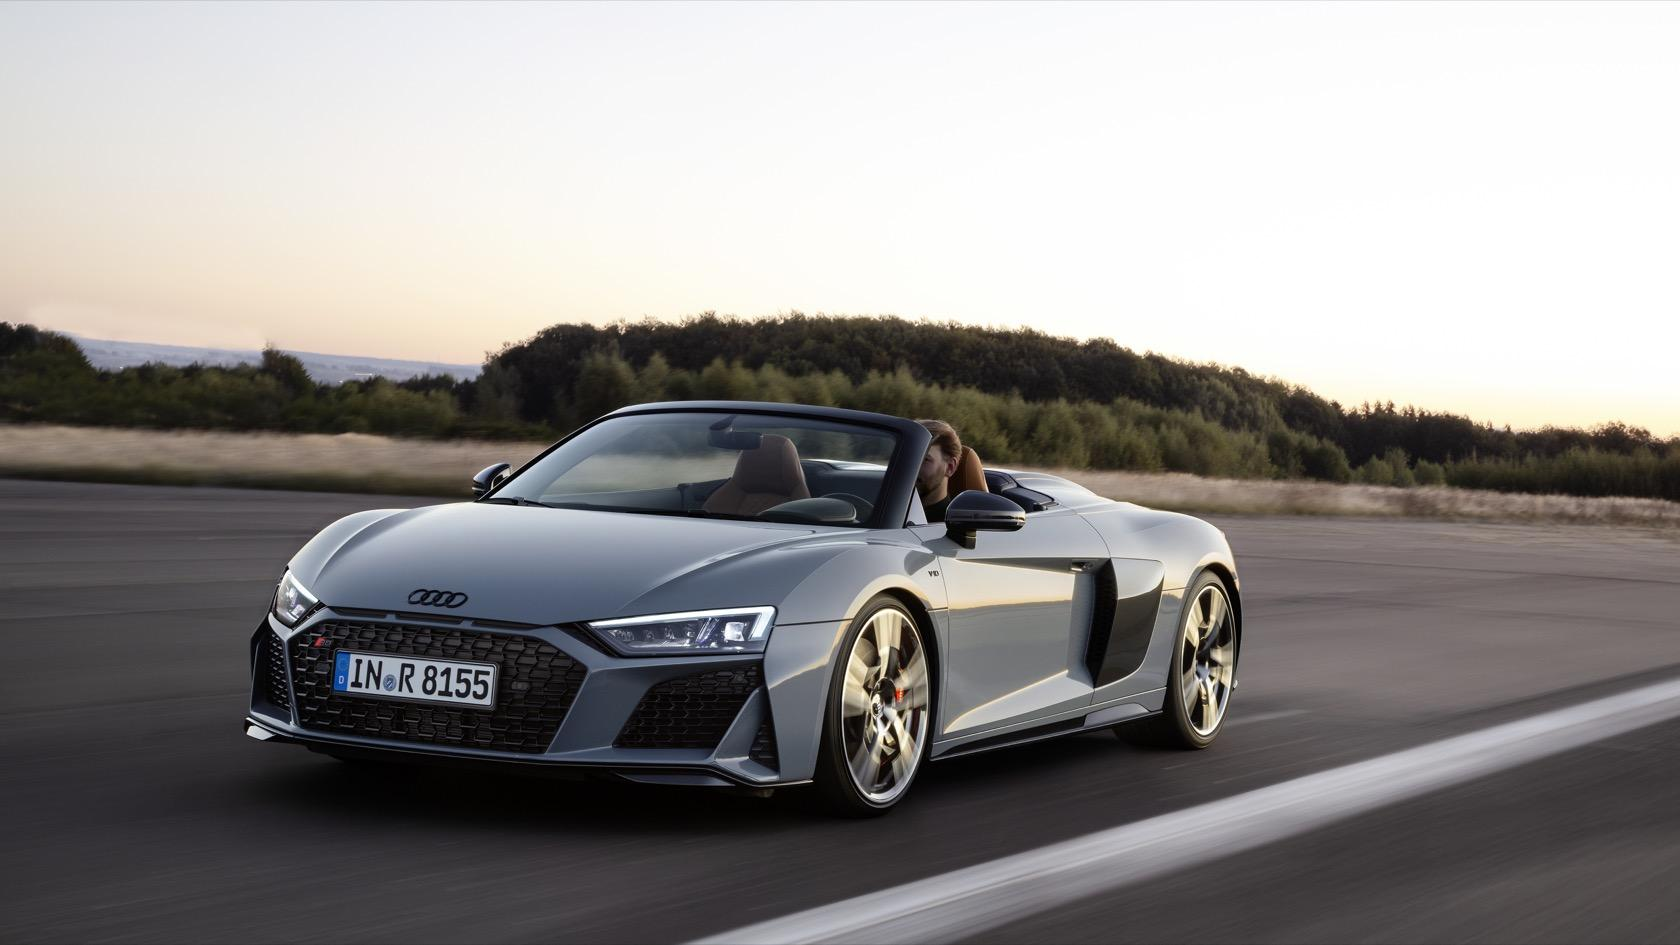 2019 Audi R8 Gets Meaner Look And More Power Slashgear